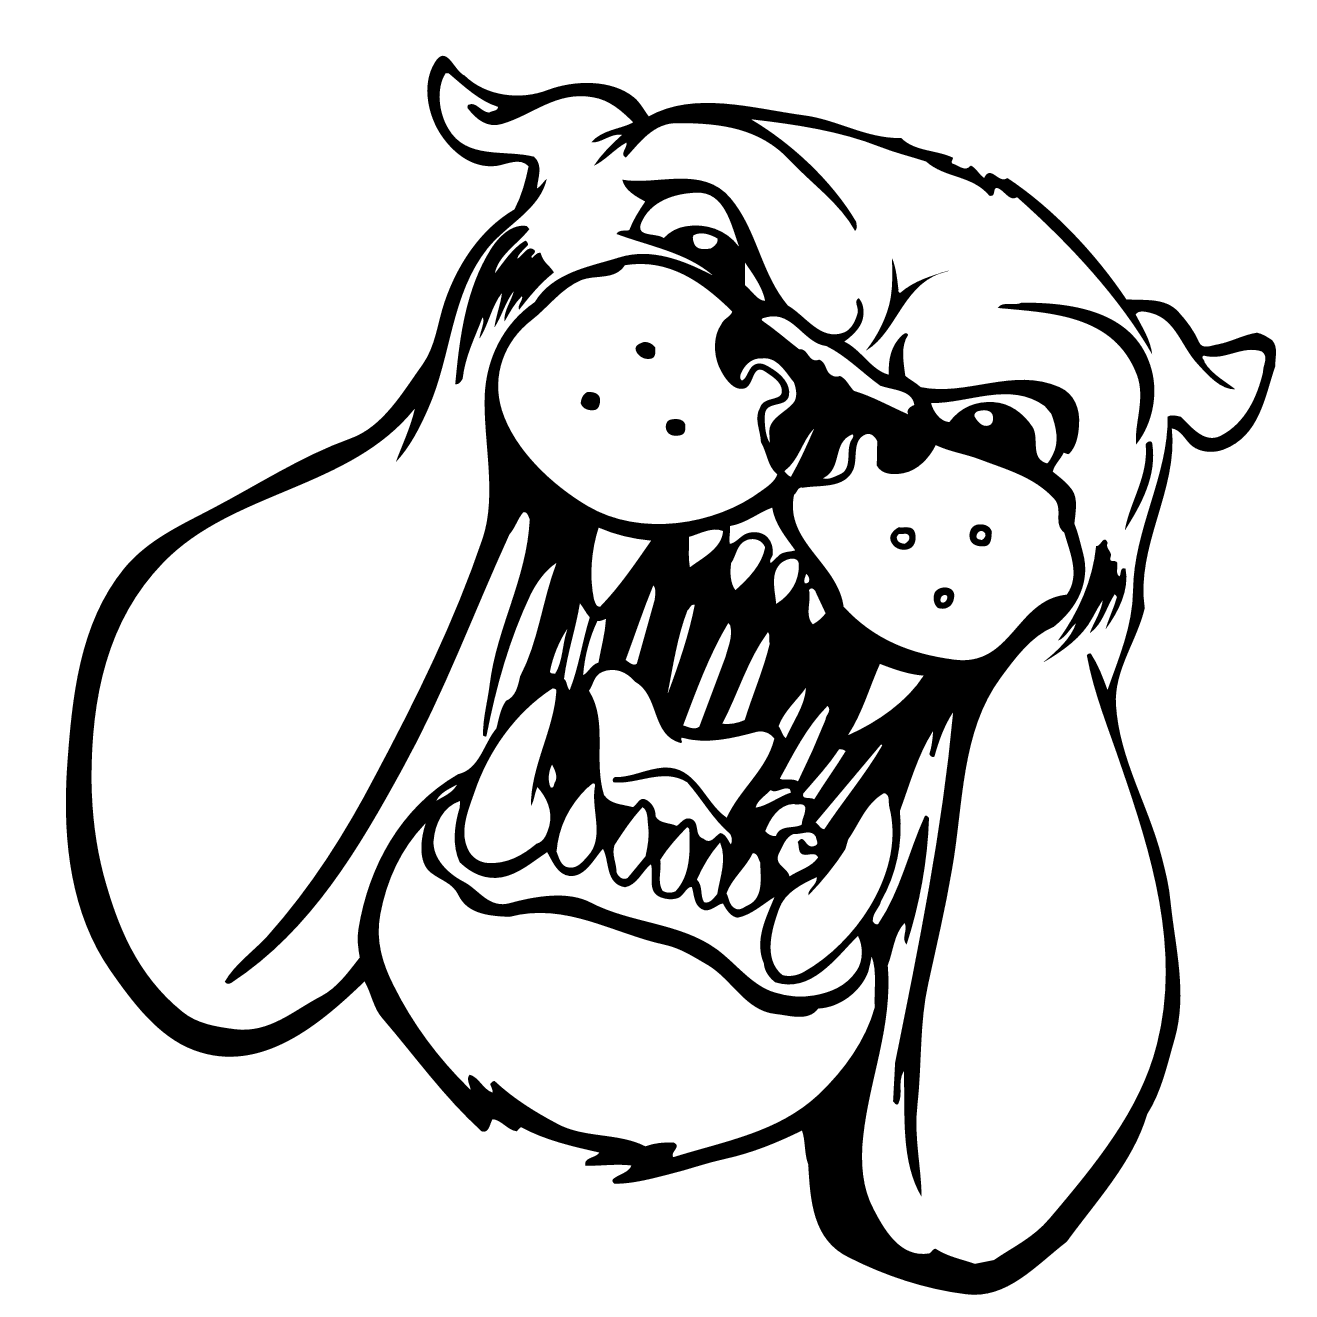 Bulldog Outline Clipart